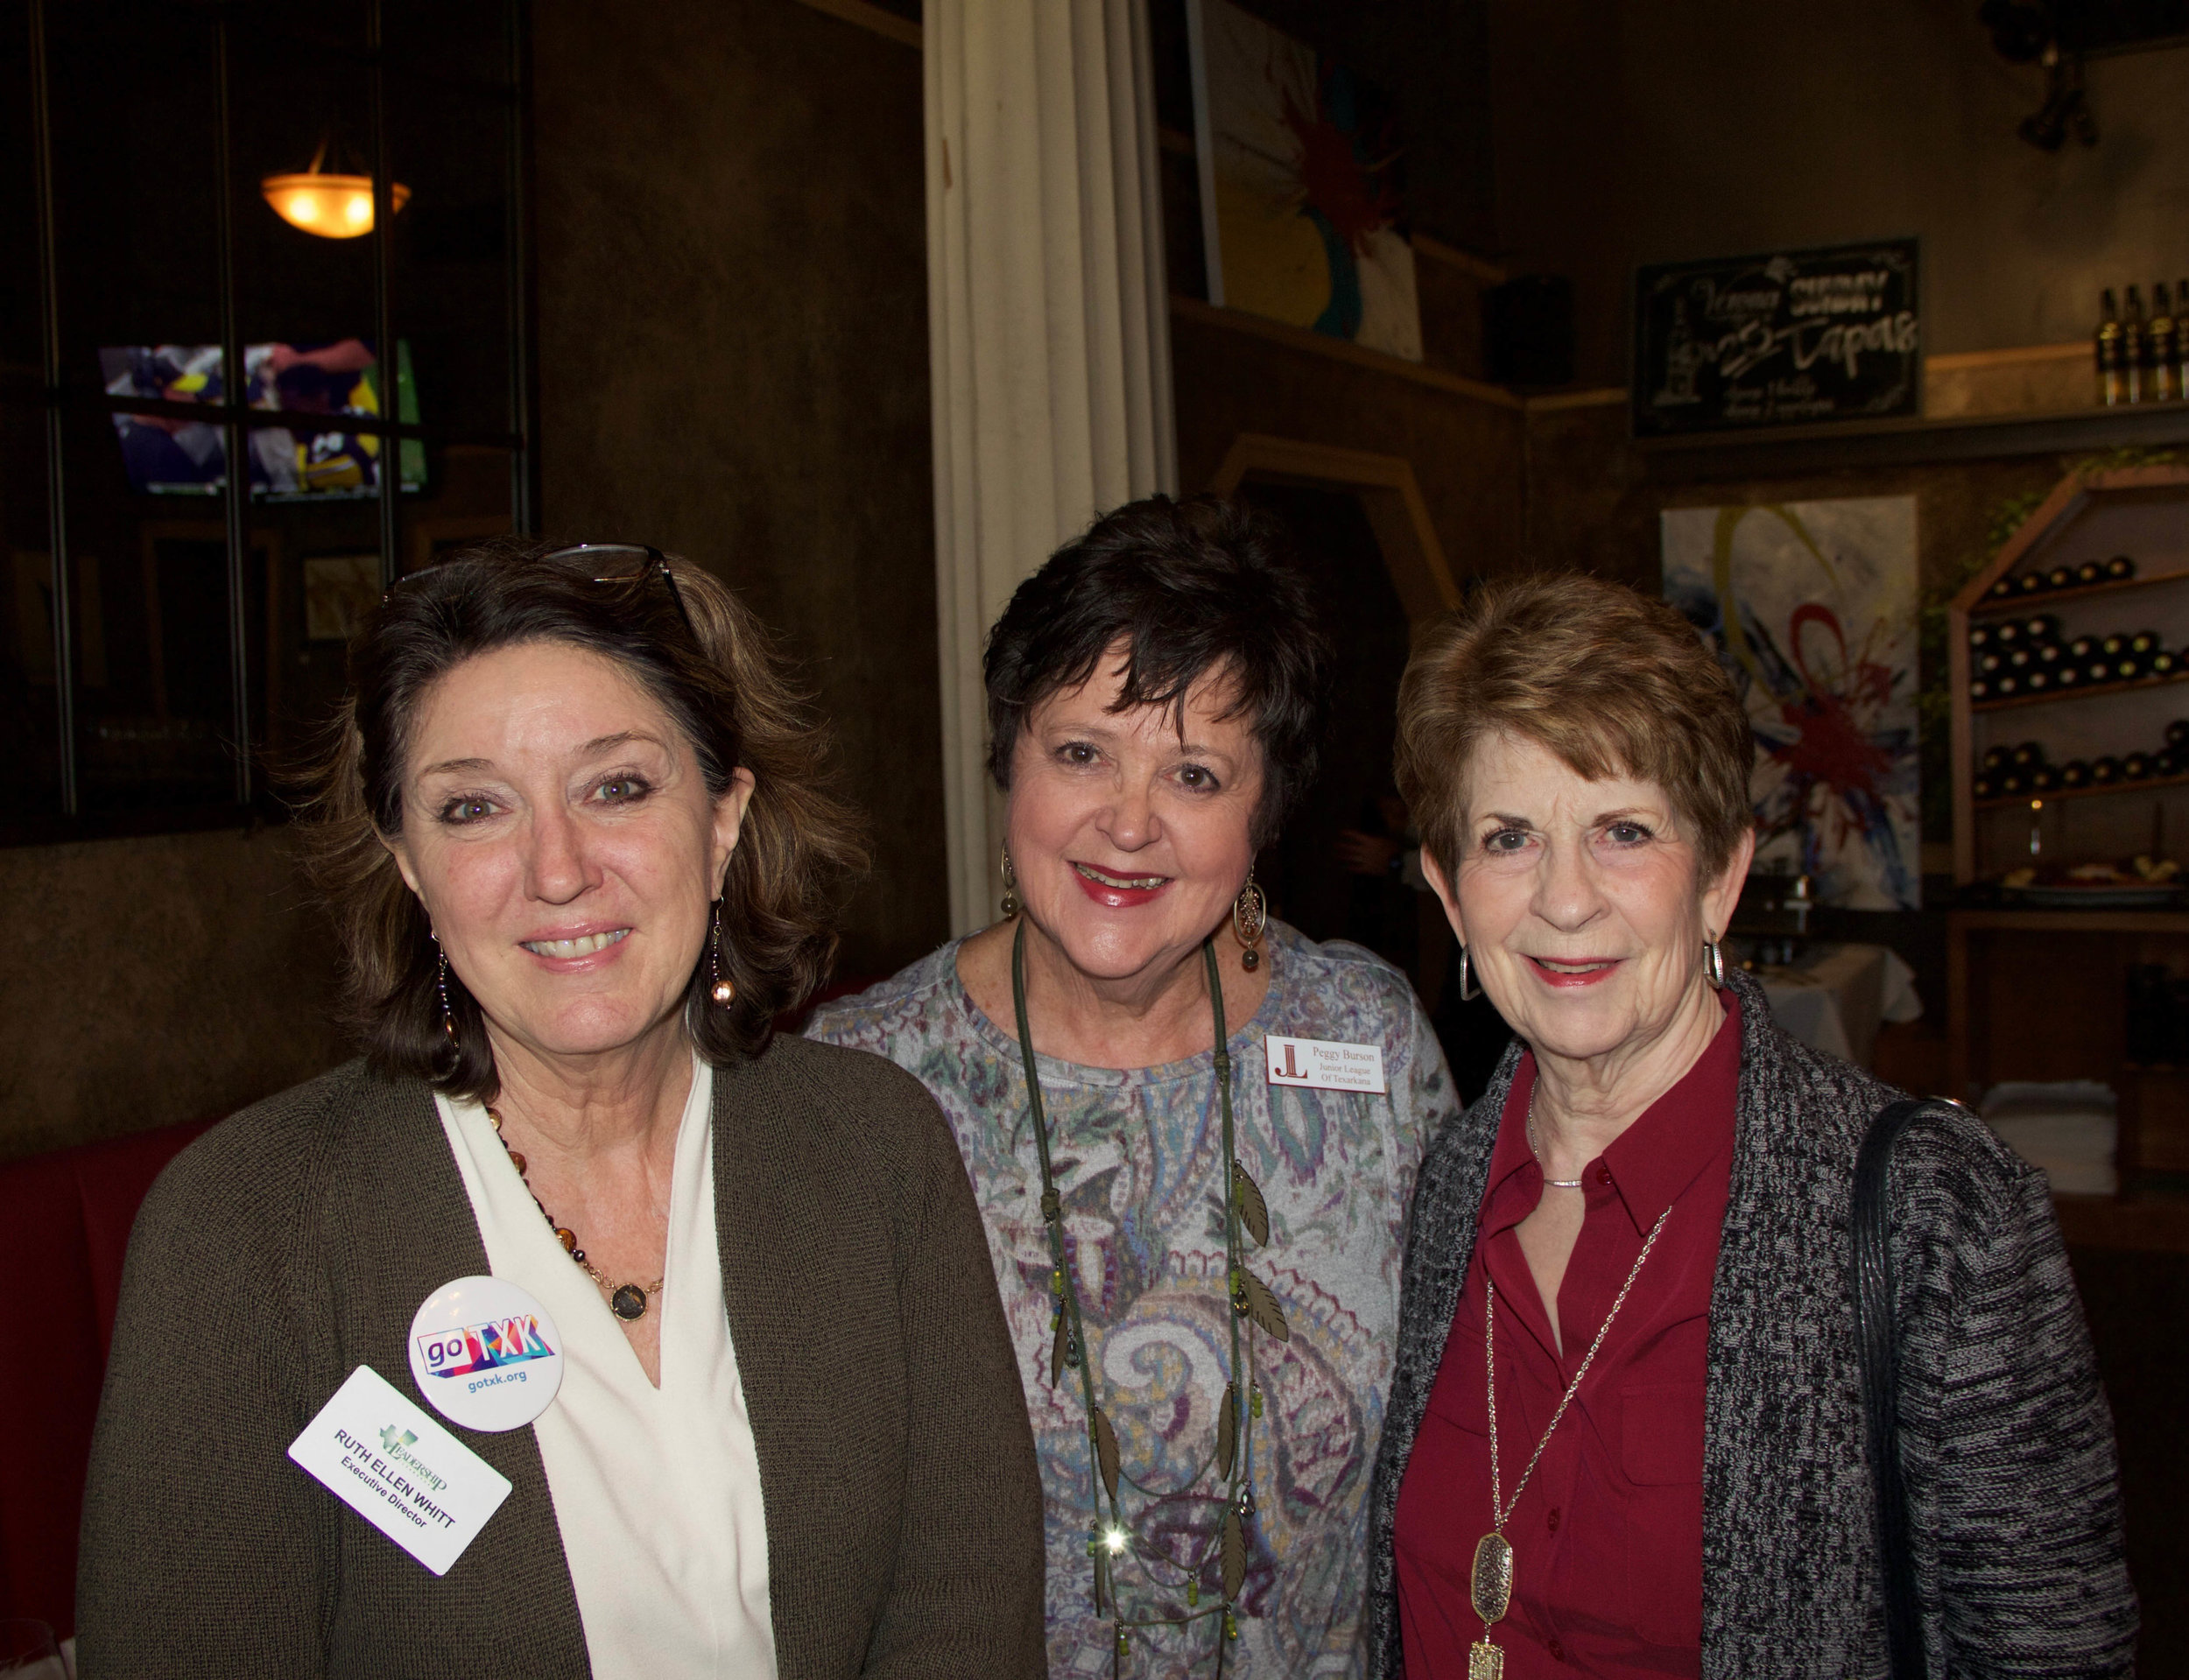 Ruth Ellen Whitt, Peggy Burson and Suzy Heath